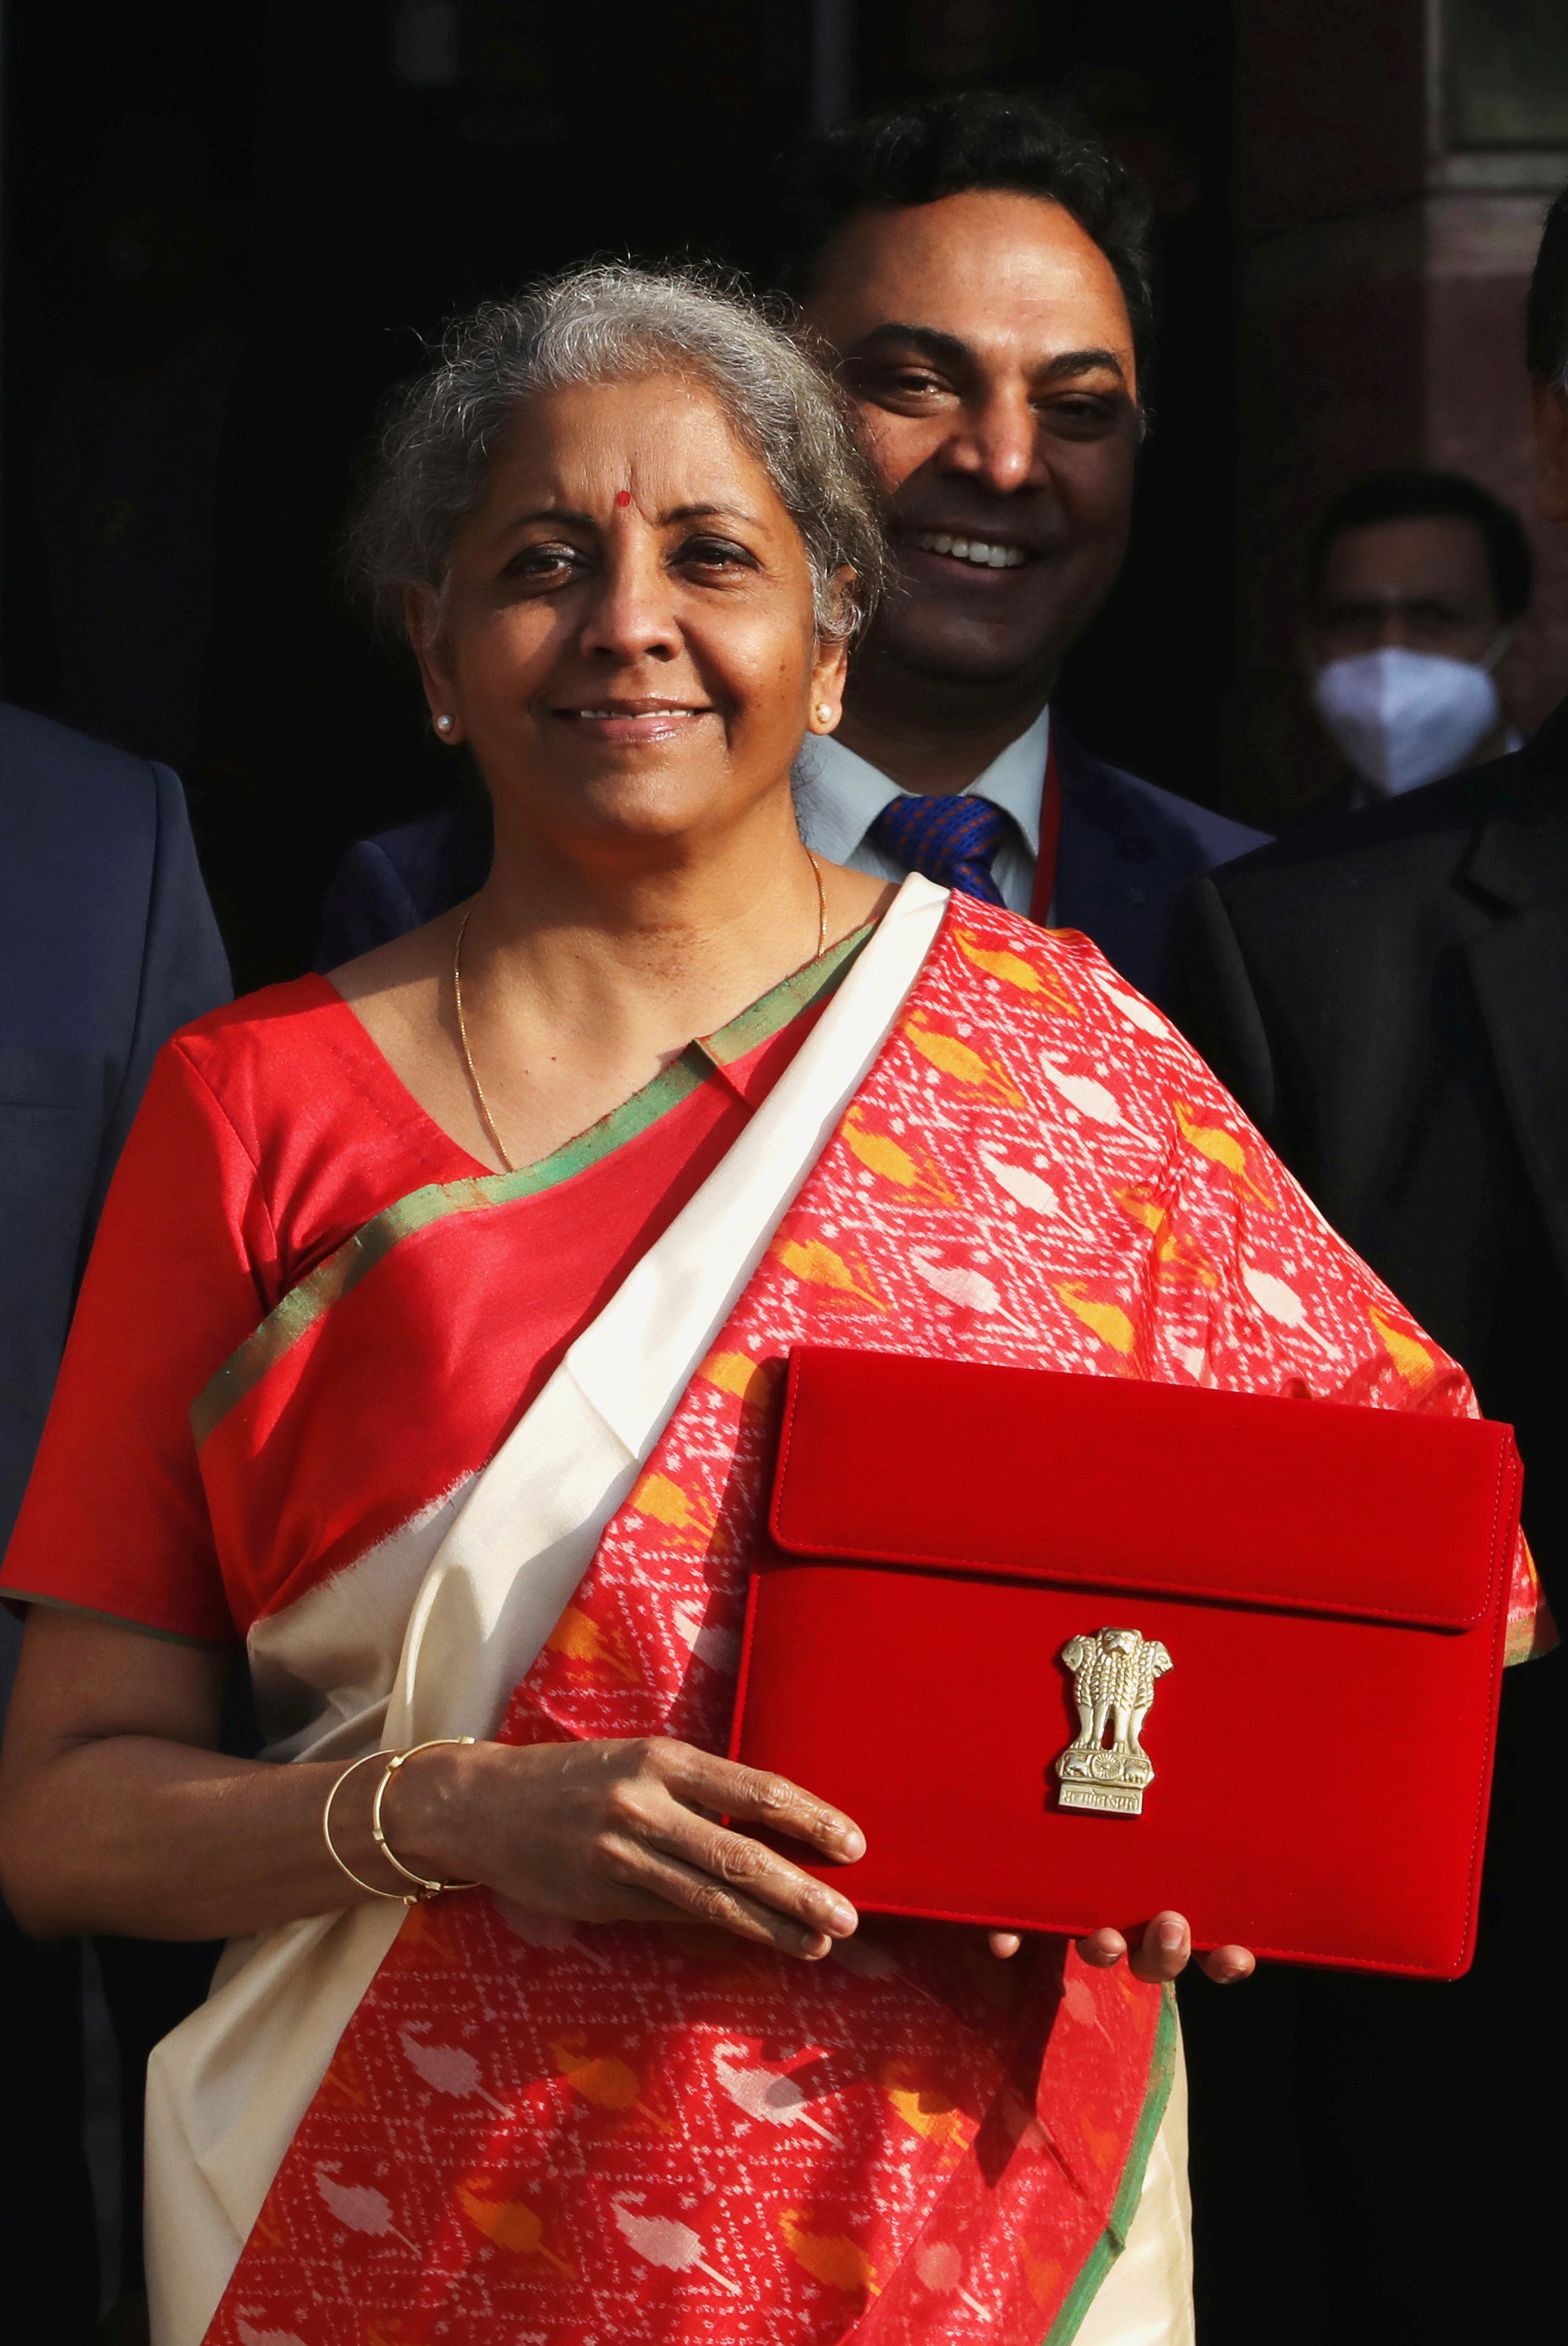 India's Finance Minister Nirmala Sitharaman holds up a folder with the Government of India logo, while India's Chief Economic Advisor Krishnamurthy Subramanian looks on (at rear), as she leaves her office to present the federal budget in the parliament in New Delhi, India, February 1, 2021. REUTERS/Anushree Fadnavis